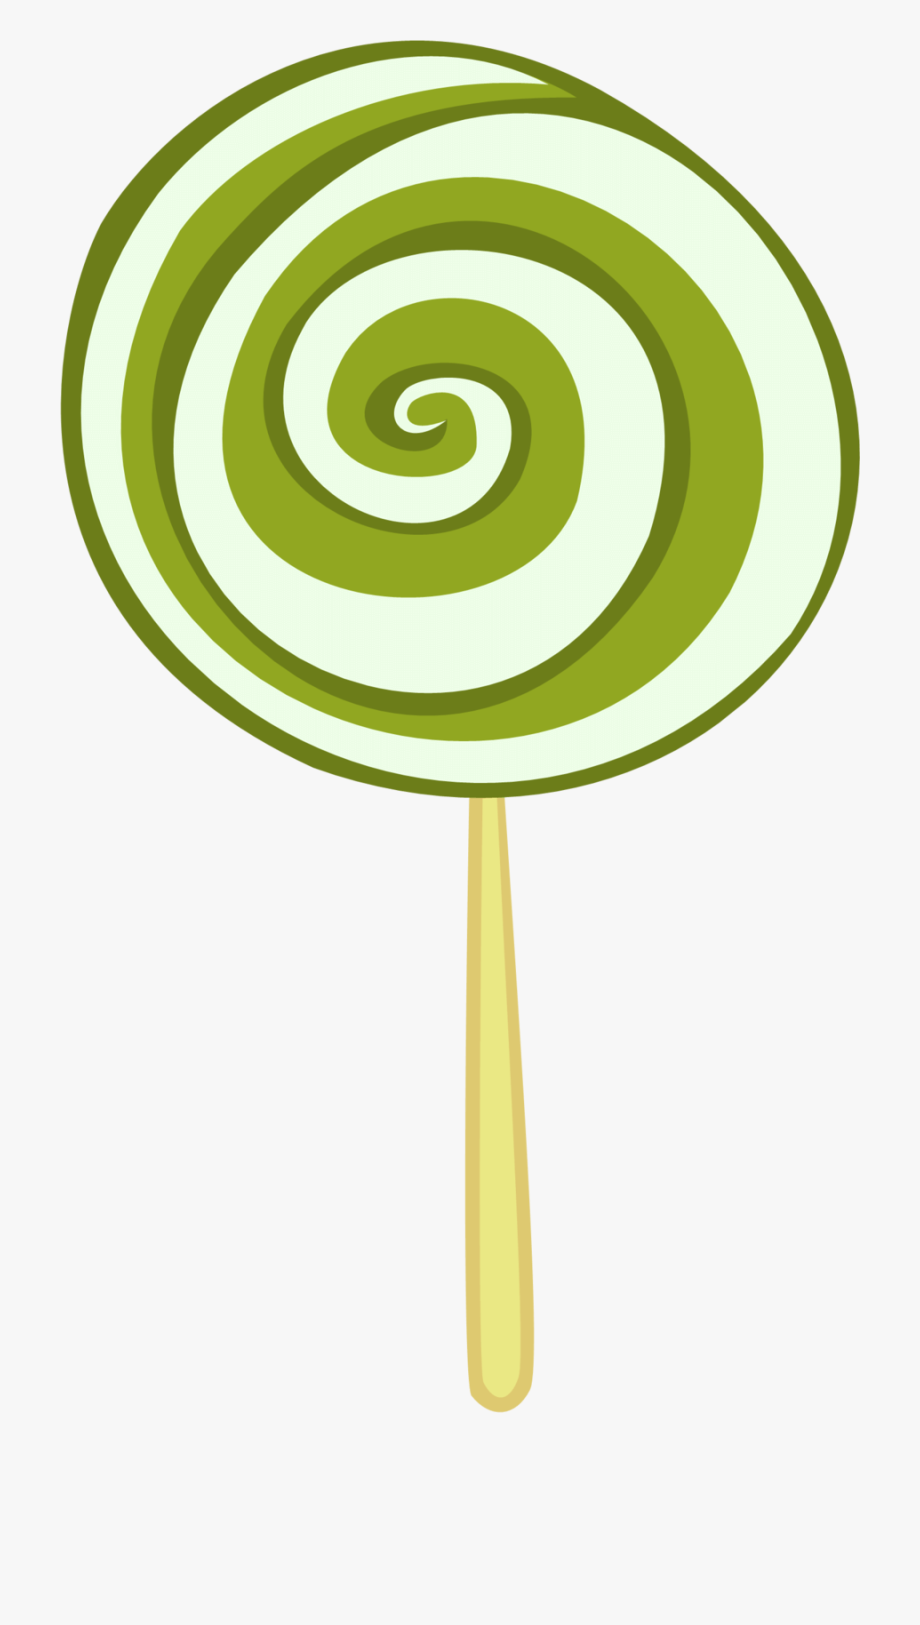 Lollipop Clipart Lollipo.